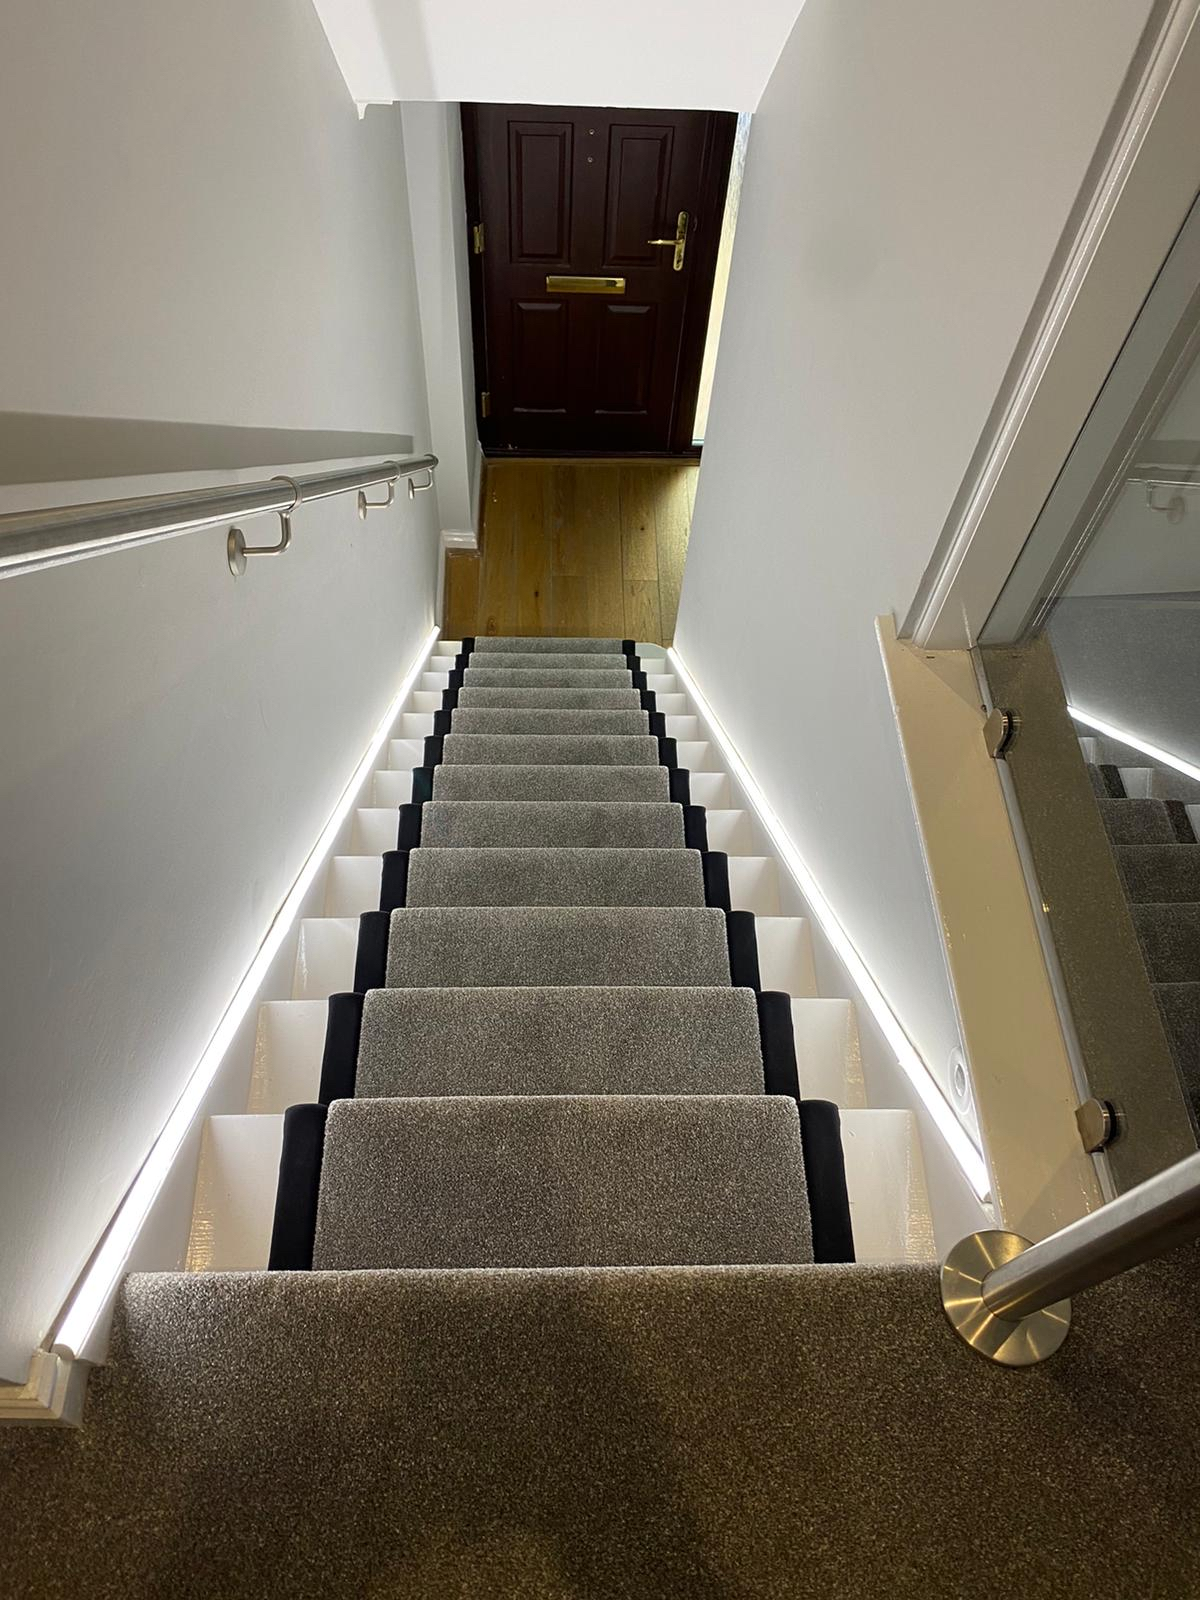 Carpet with bound edges to stairs